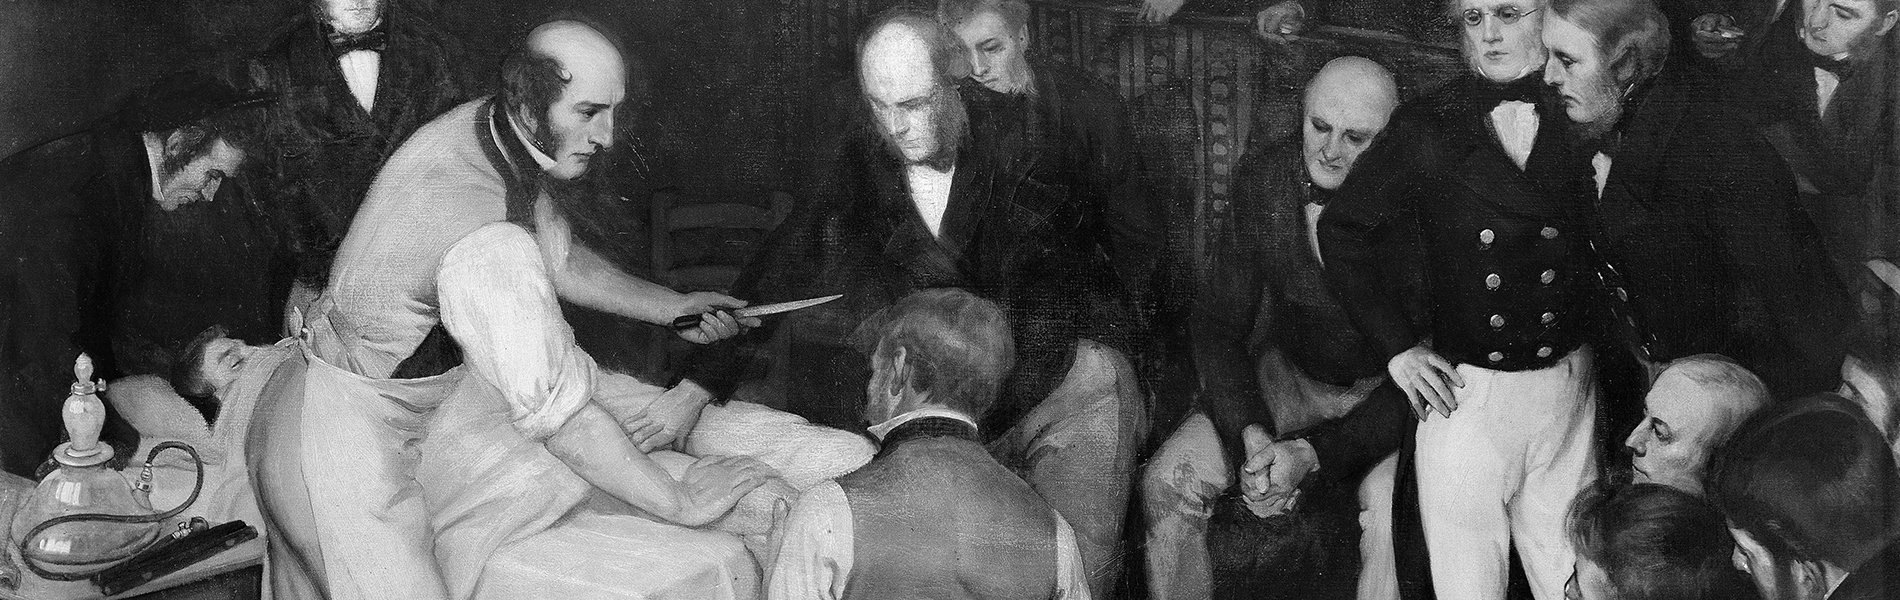 Surgeon Robert Liston operating, depicted by artist Ernest Board of Bristol.